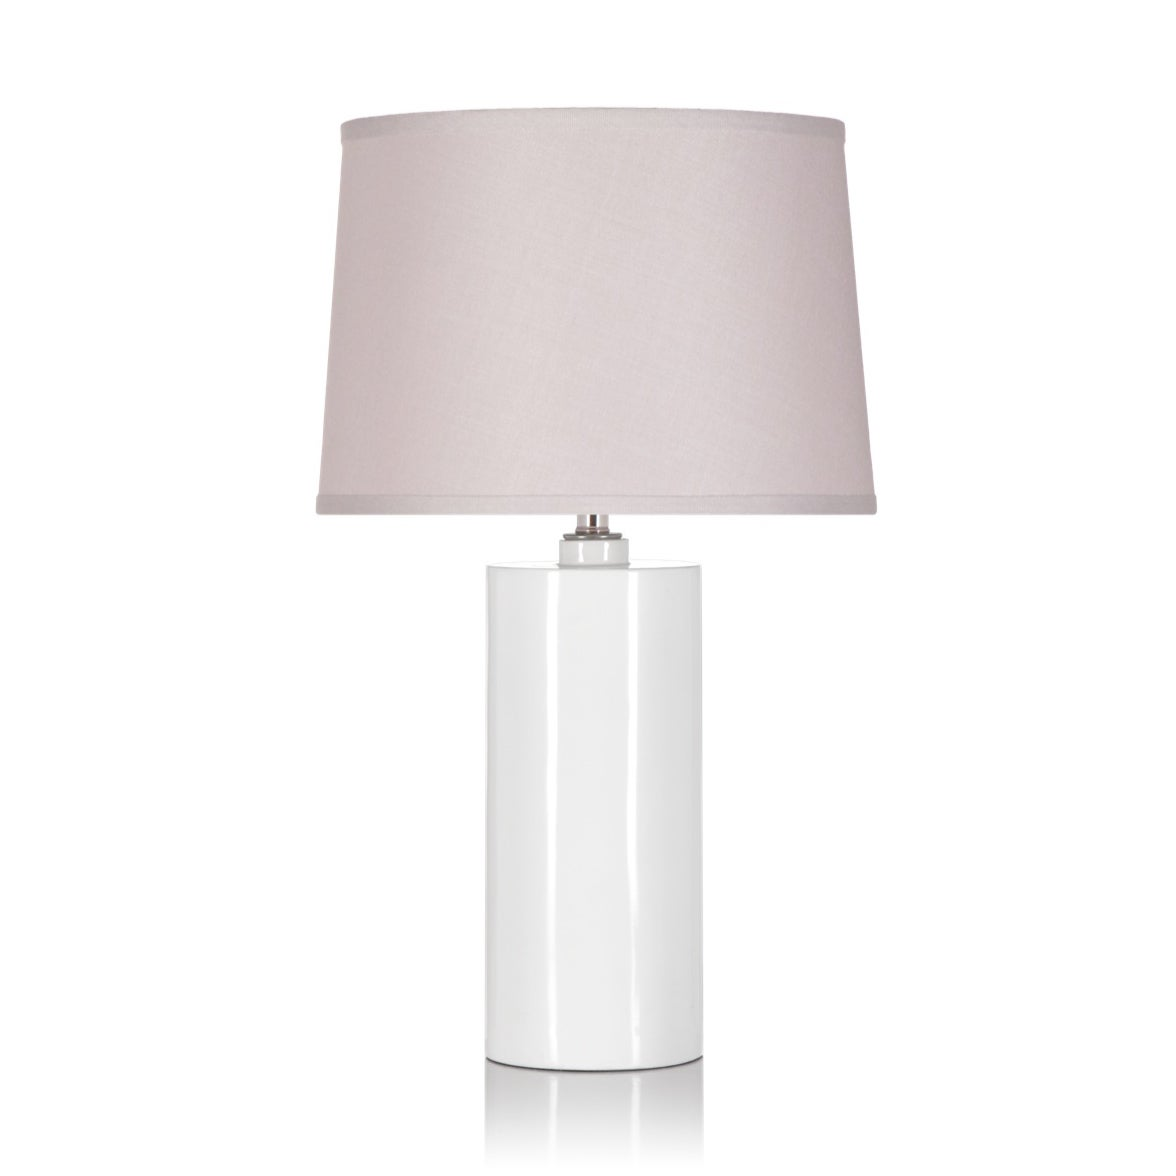 White/ Tan 1-light Table Lamp at Sears.com